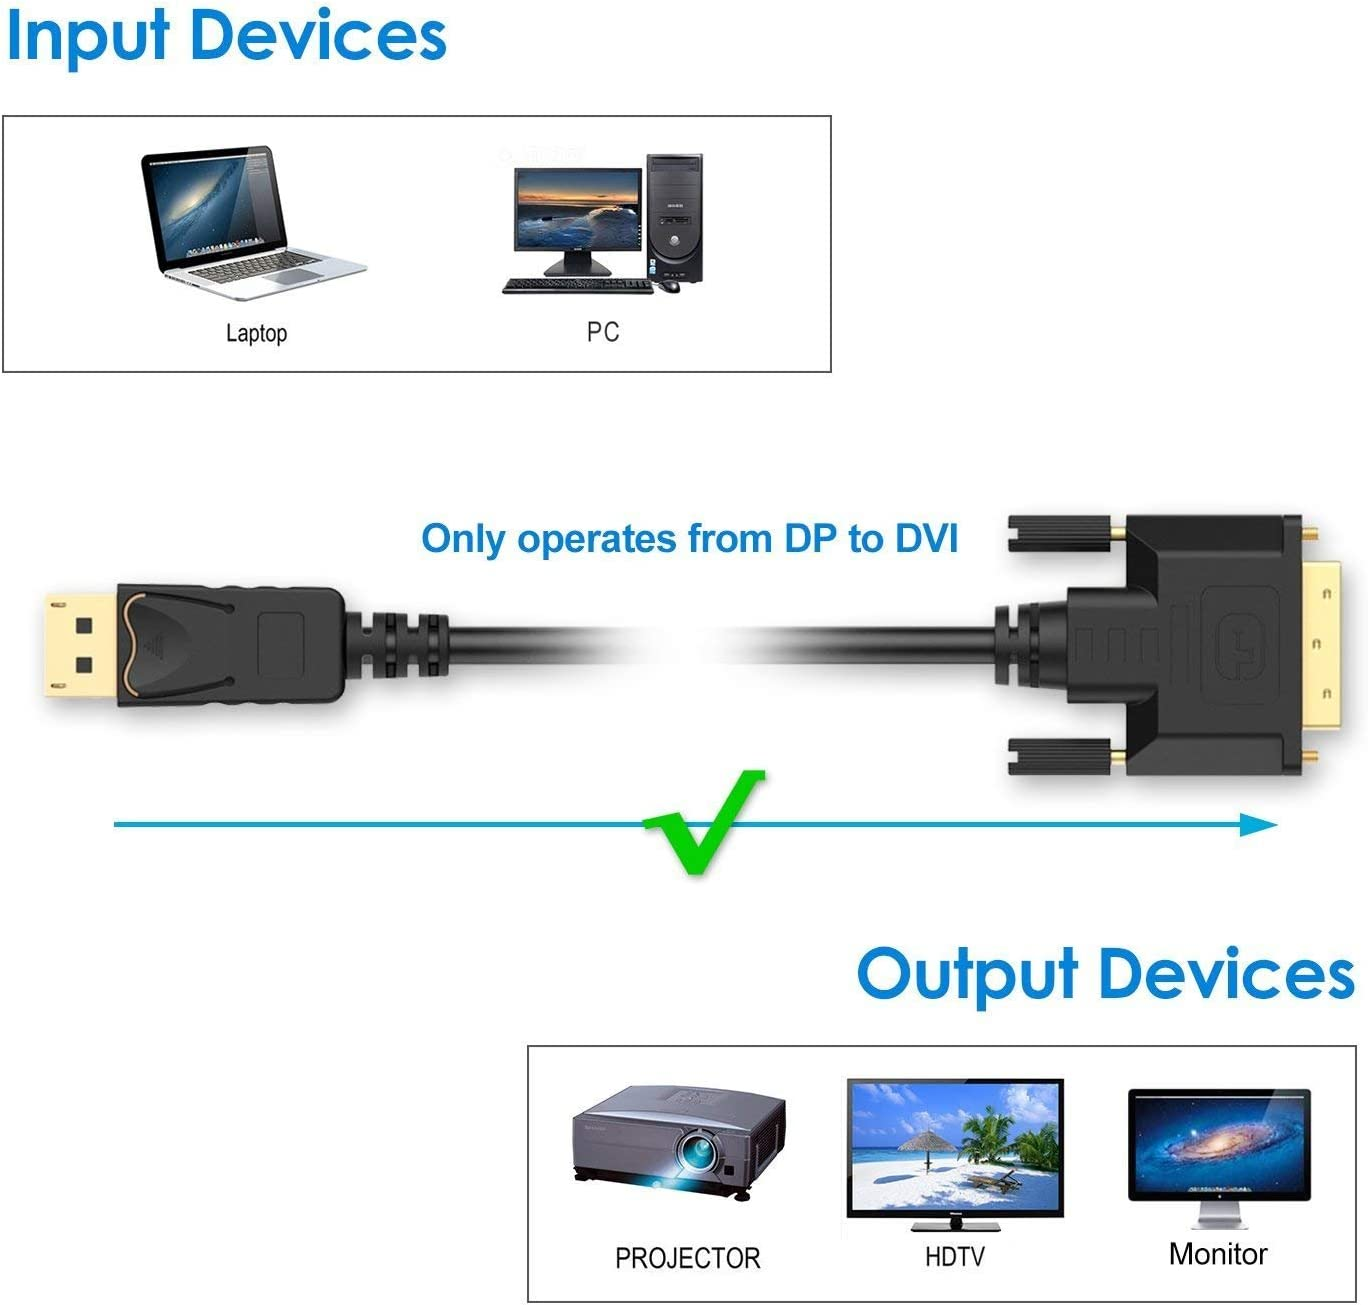 HP ASUS etc 15Ft, dp to dvi Cable A-technology Display Port to DVI Cable 1080P is a DisplayPort DP to DVI-D Male to Male Adapter Cable for Dell Lenovo